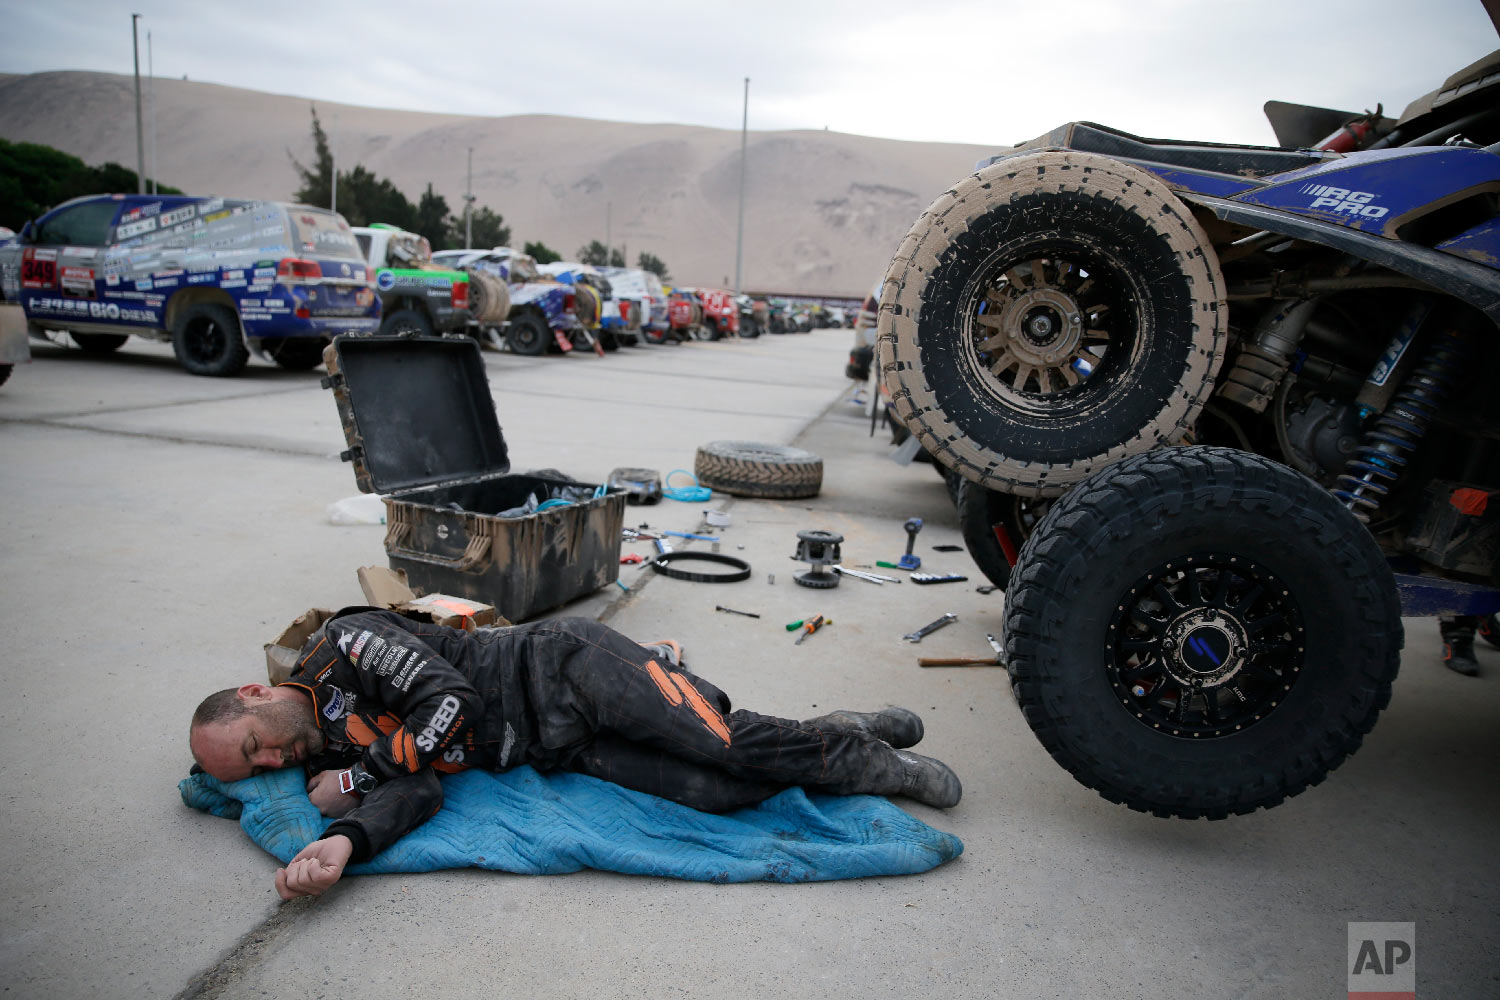 Co-driver Bill Conger, of United States, rests in Peru, Jan. 11, 2019. (AP Photo/Ricardo Mazalan)